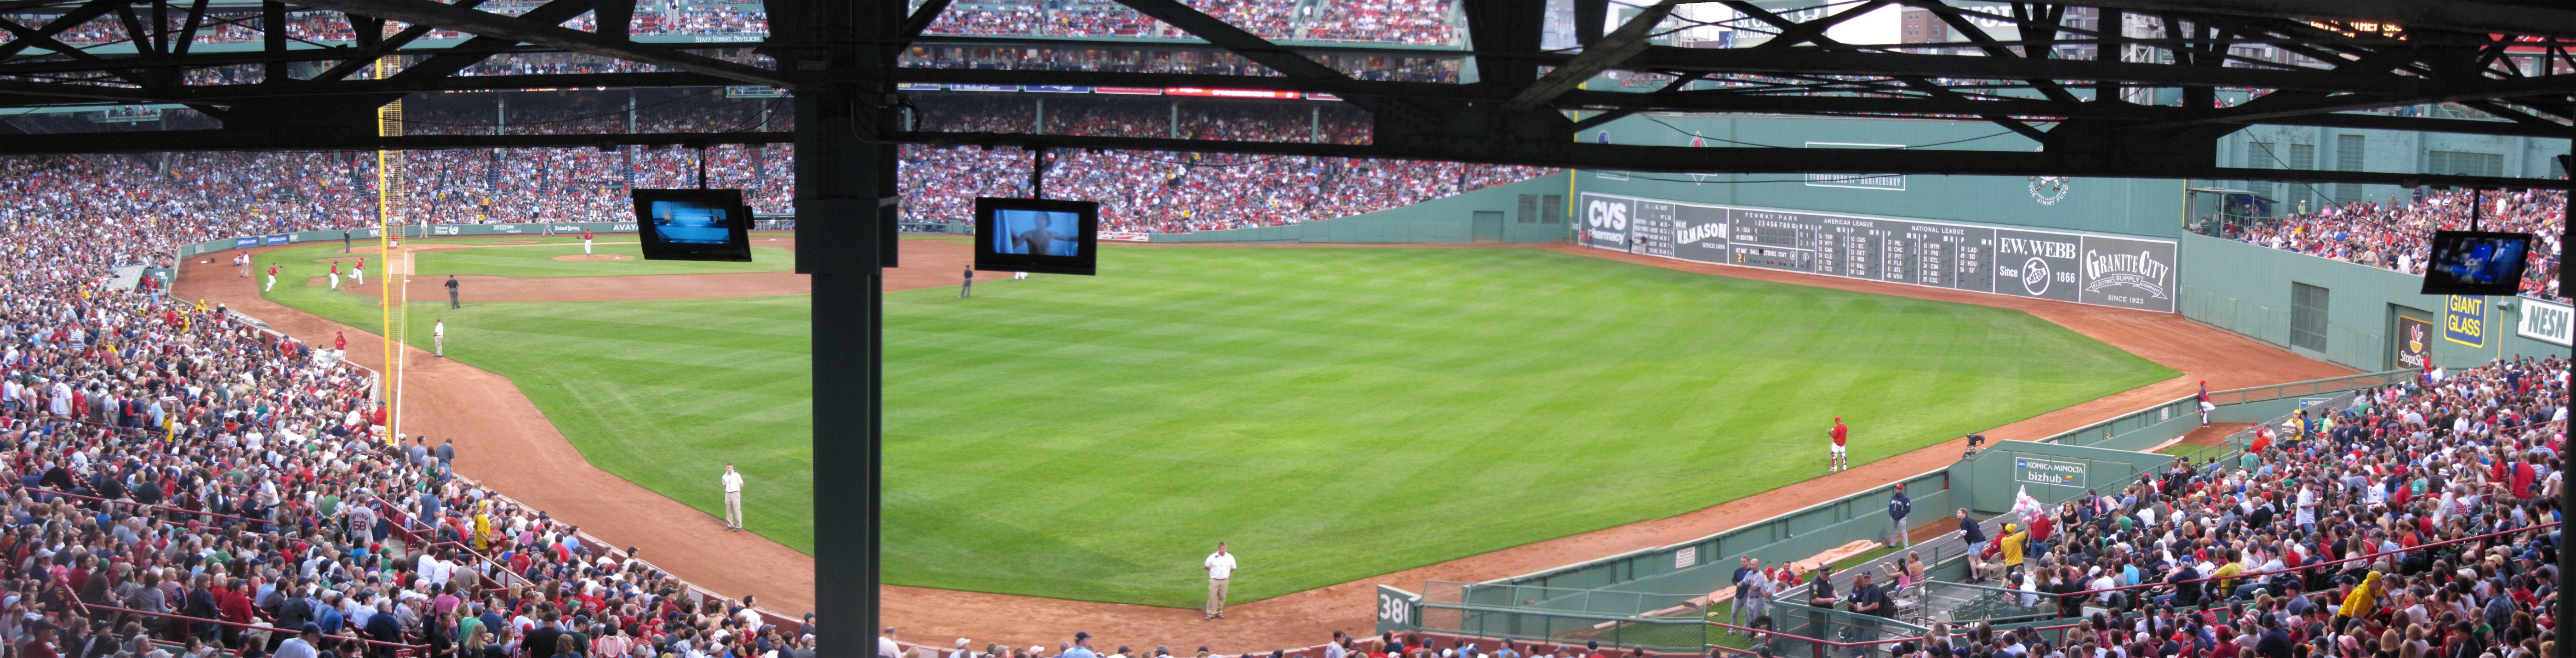 Fenway Park Standing Room Only Behind Section 5 Left And 4 Rightpanorama